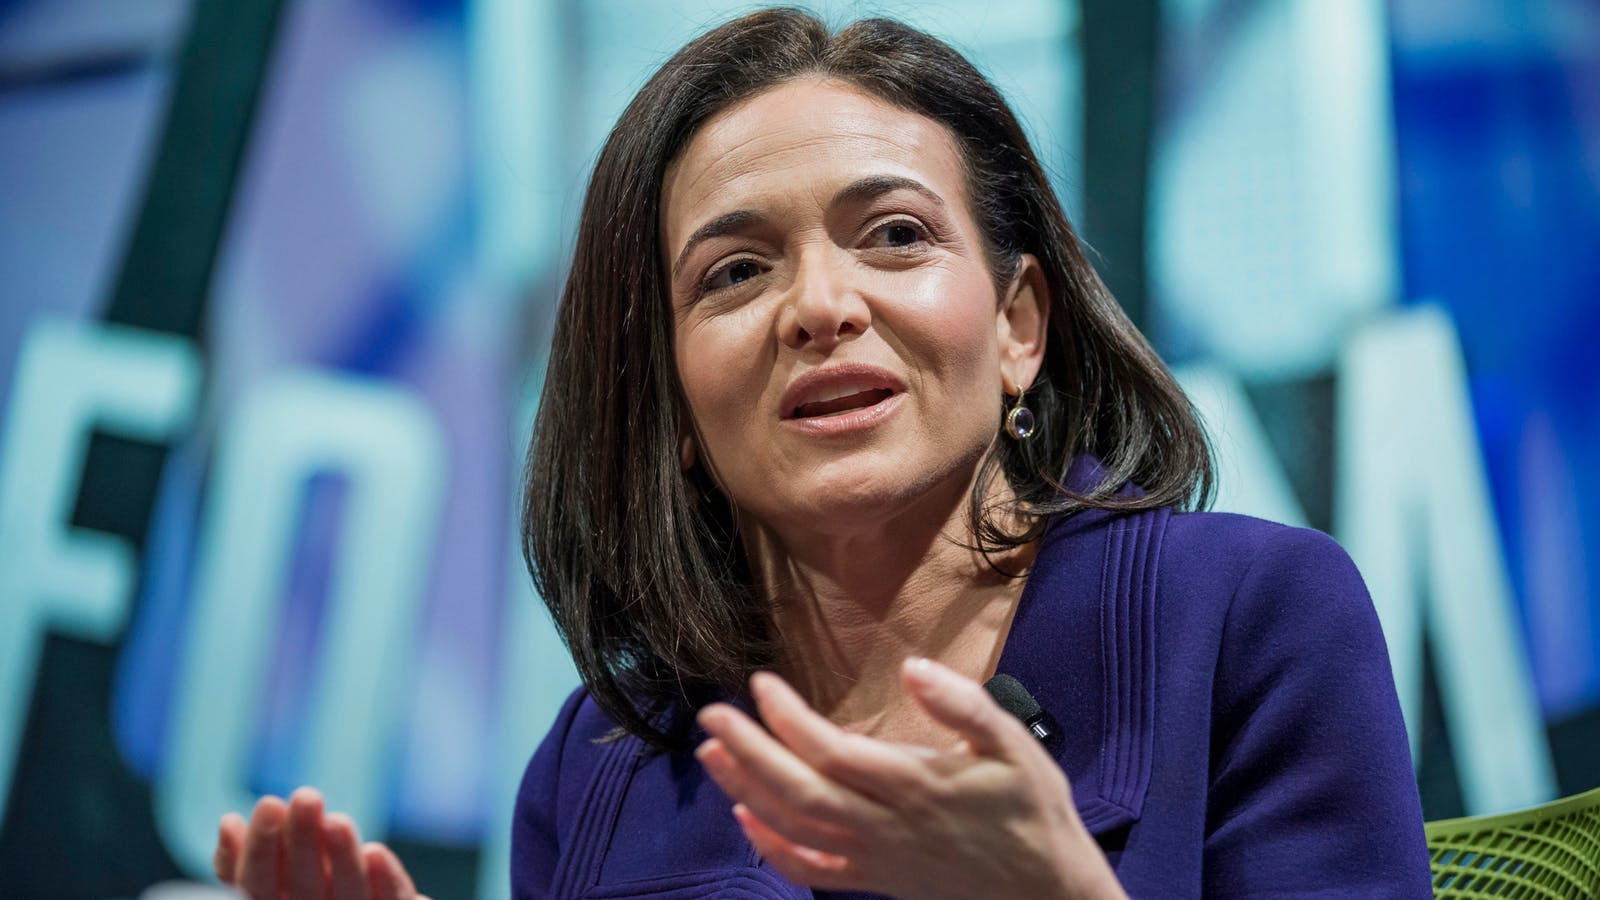 Facebook COO Sheryl Sandberg. Photo by Bloomberg.